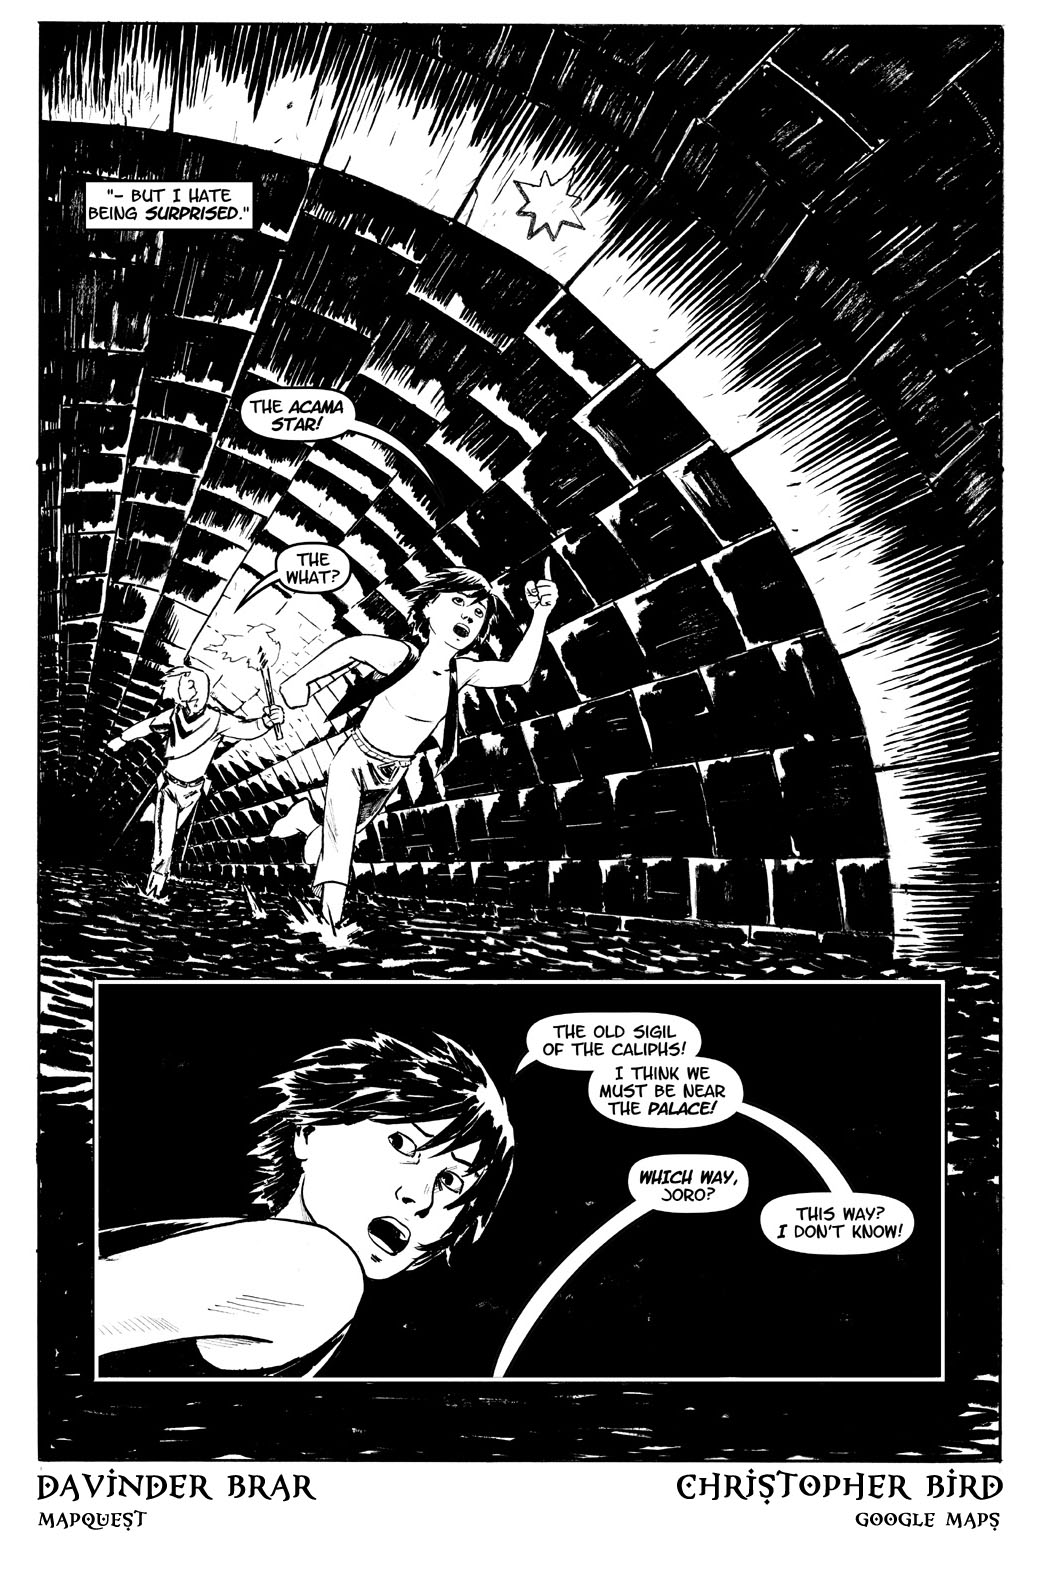 Book 5, page 8